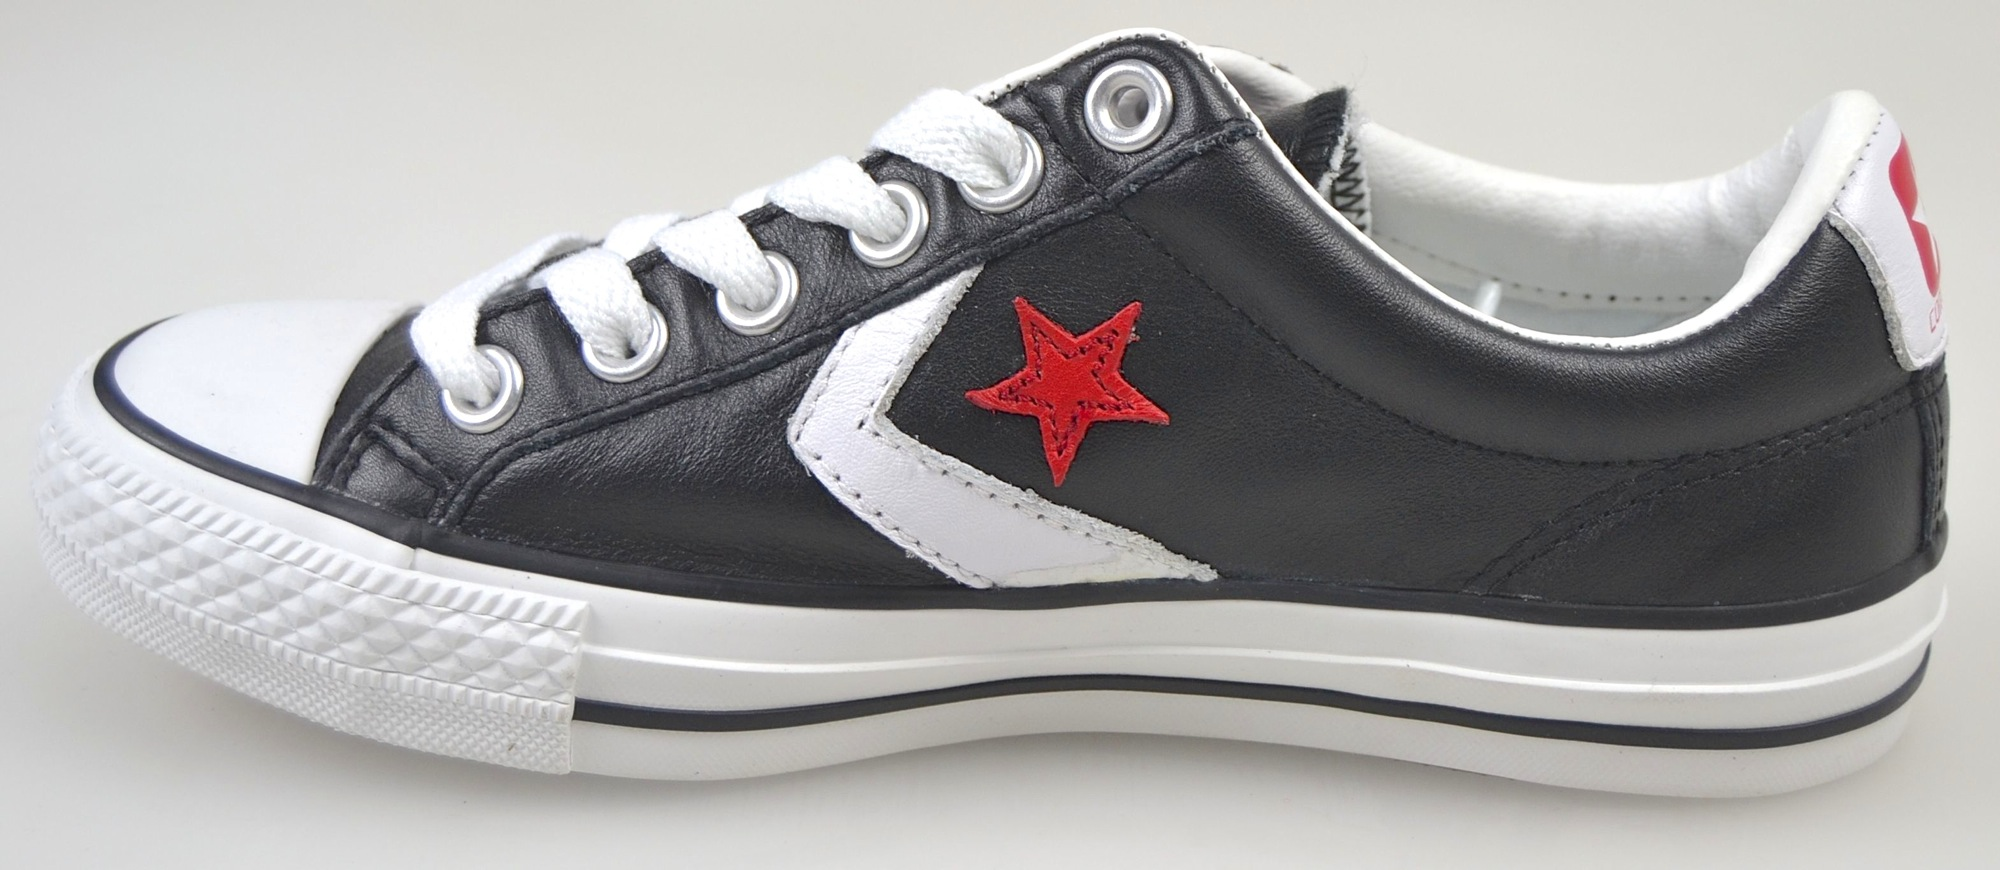 11016746af55 CONVERSE WOMAN SNEAKER SHOES CASUAL FREE TIME LEATHER CODE 105869 STAR  PLAYER OX